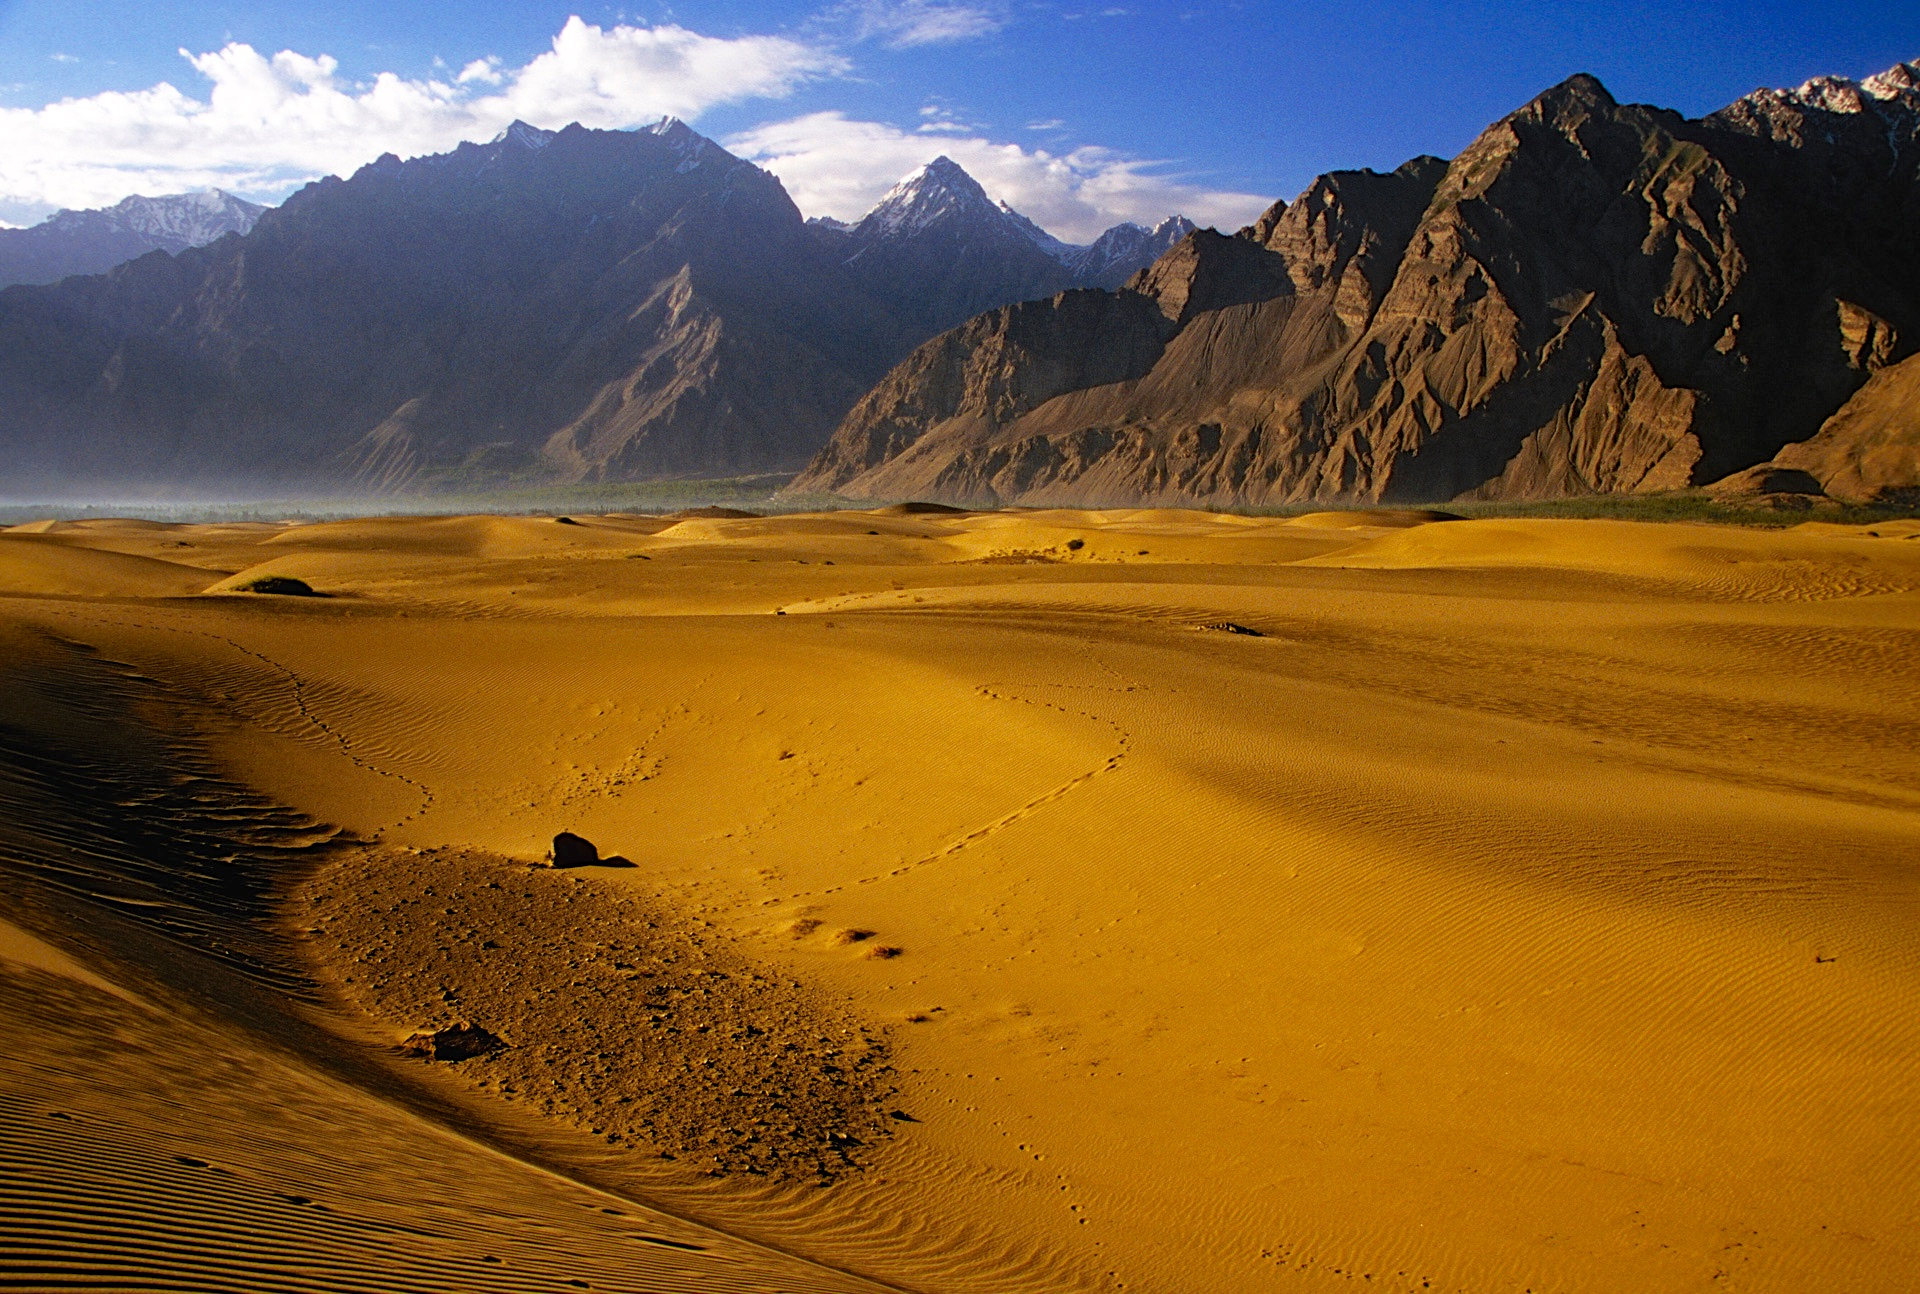 The early morning light on the sand dunes of the Indus River near Skardu.